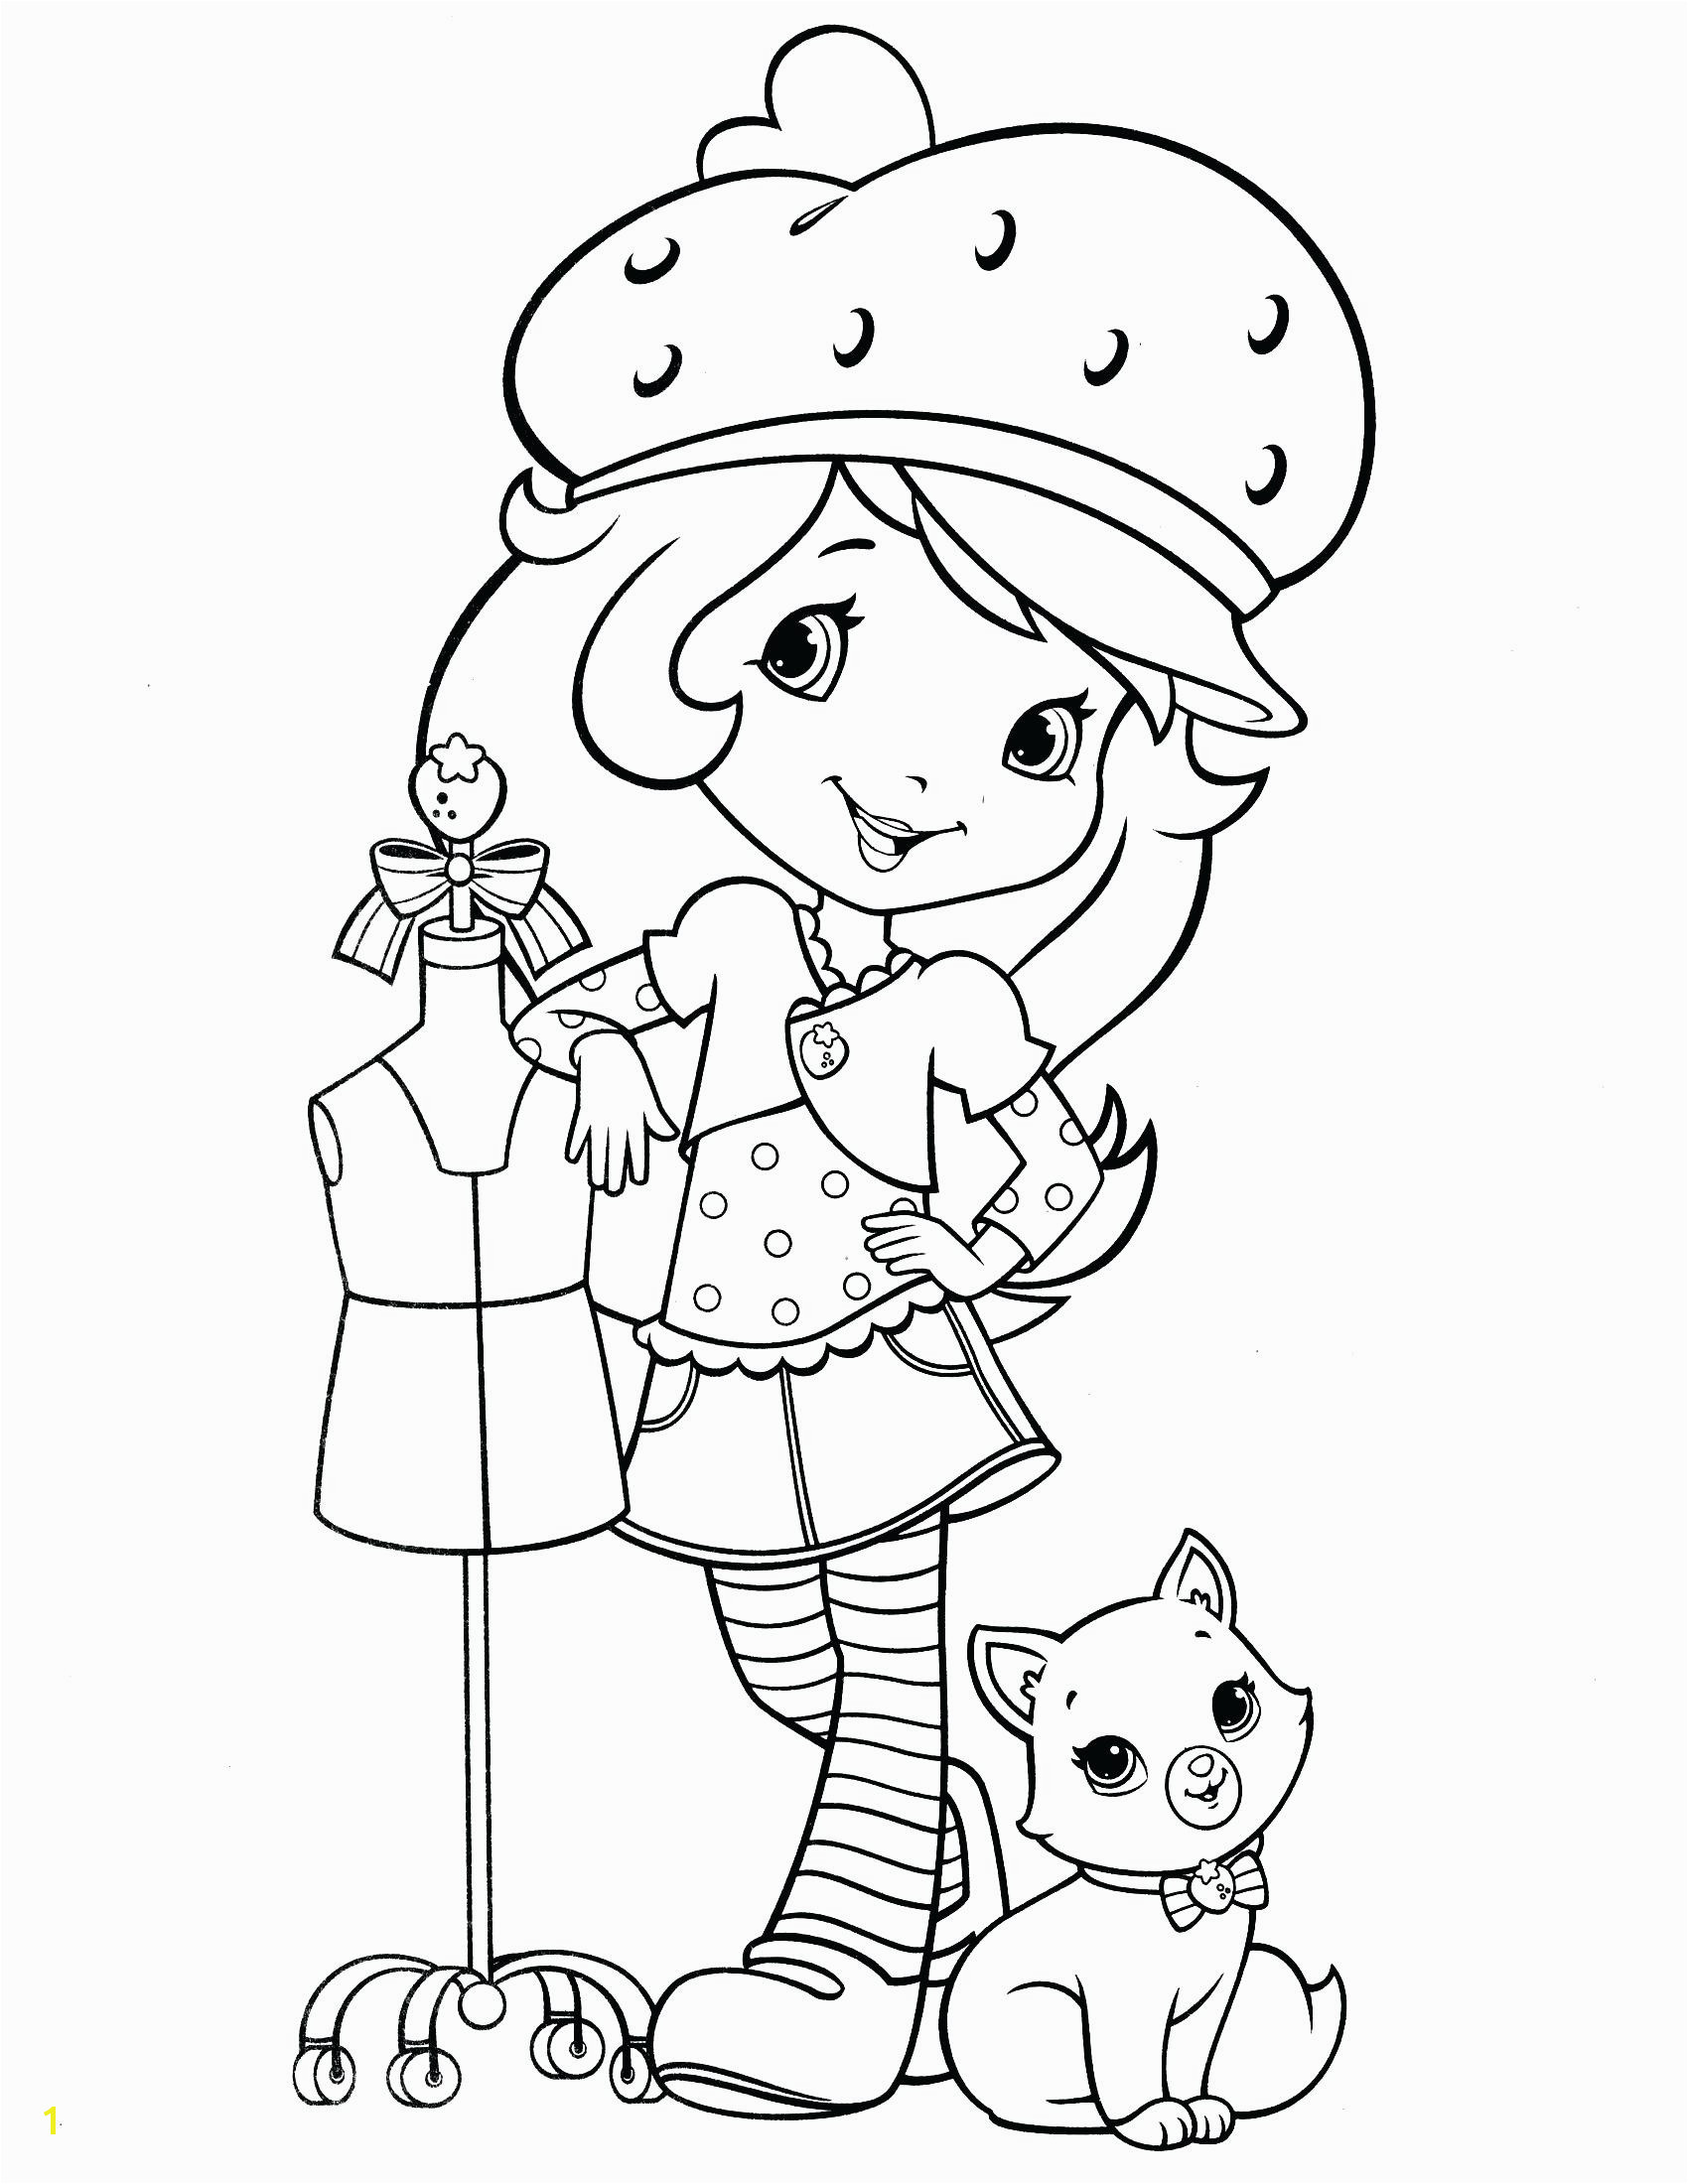 Strawberry Shortcake Doll Coloring Pages Strawberry Shortcake Doll Coloring Pages – Motionacademy